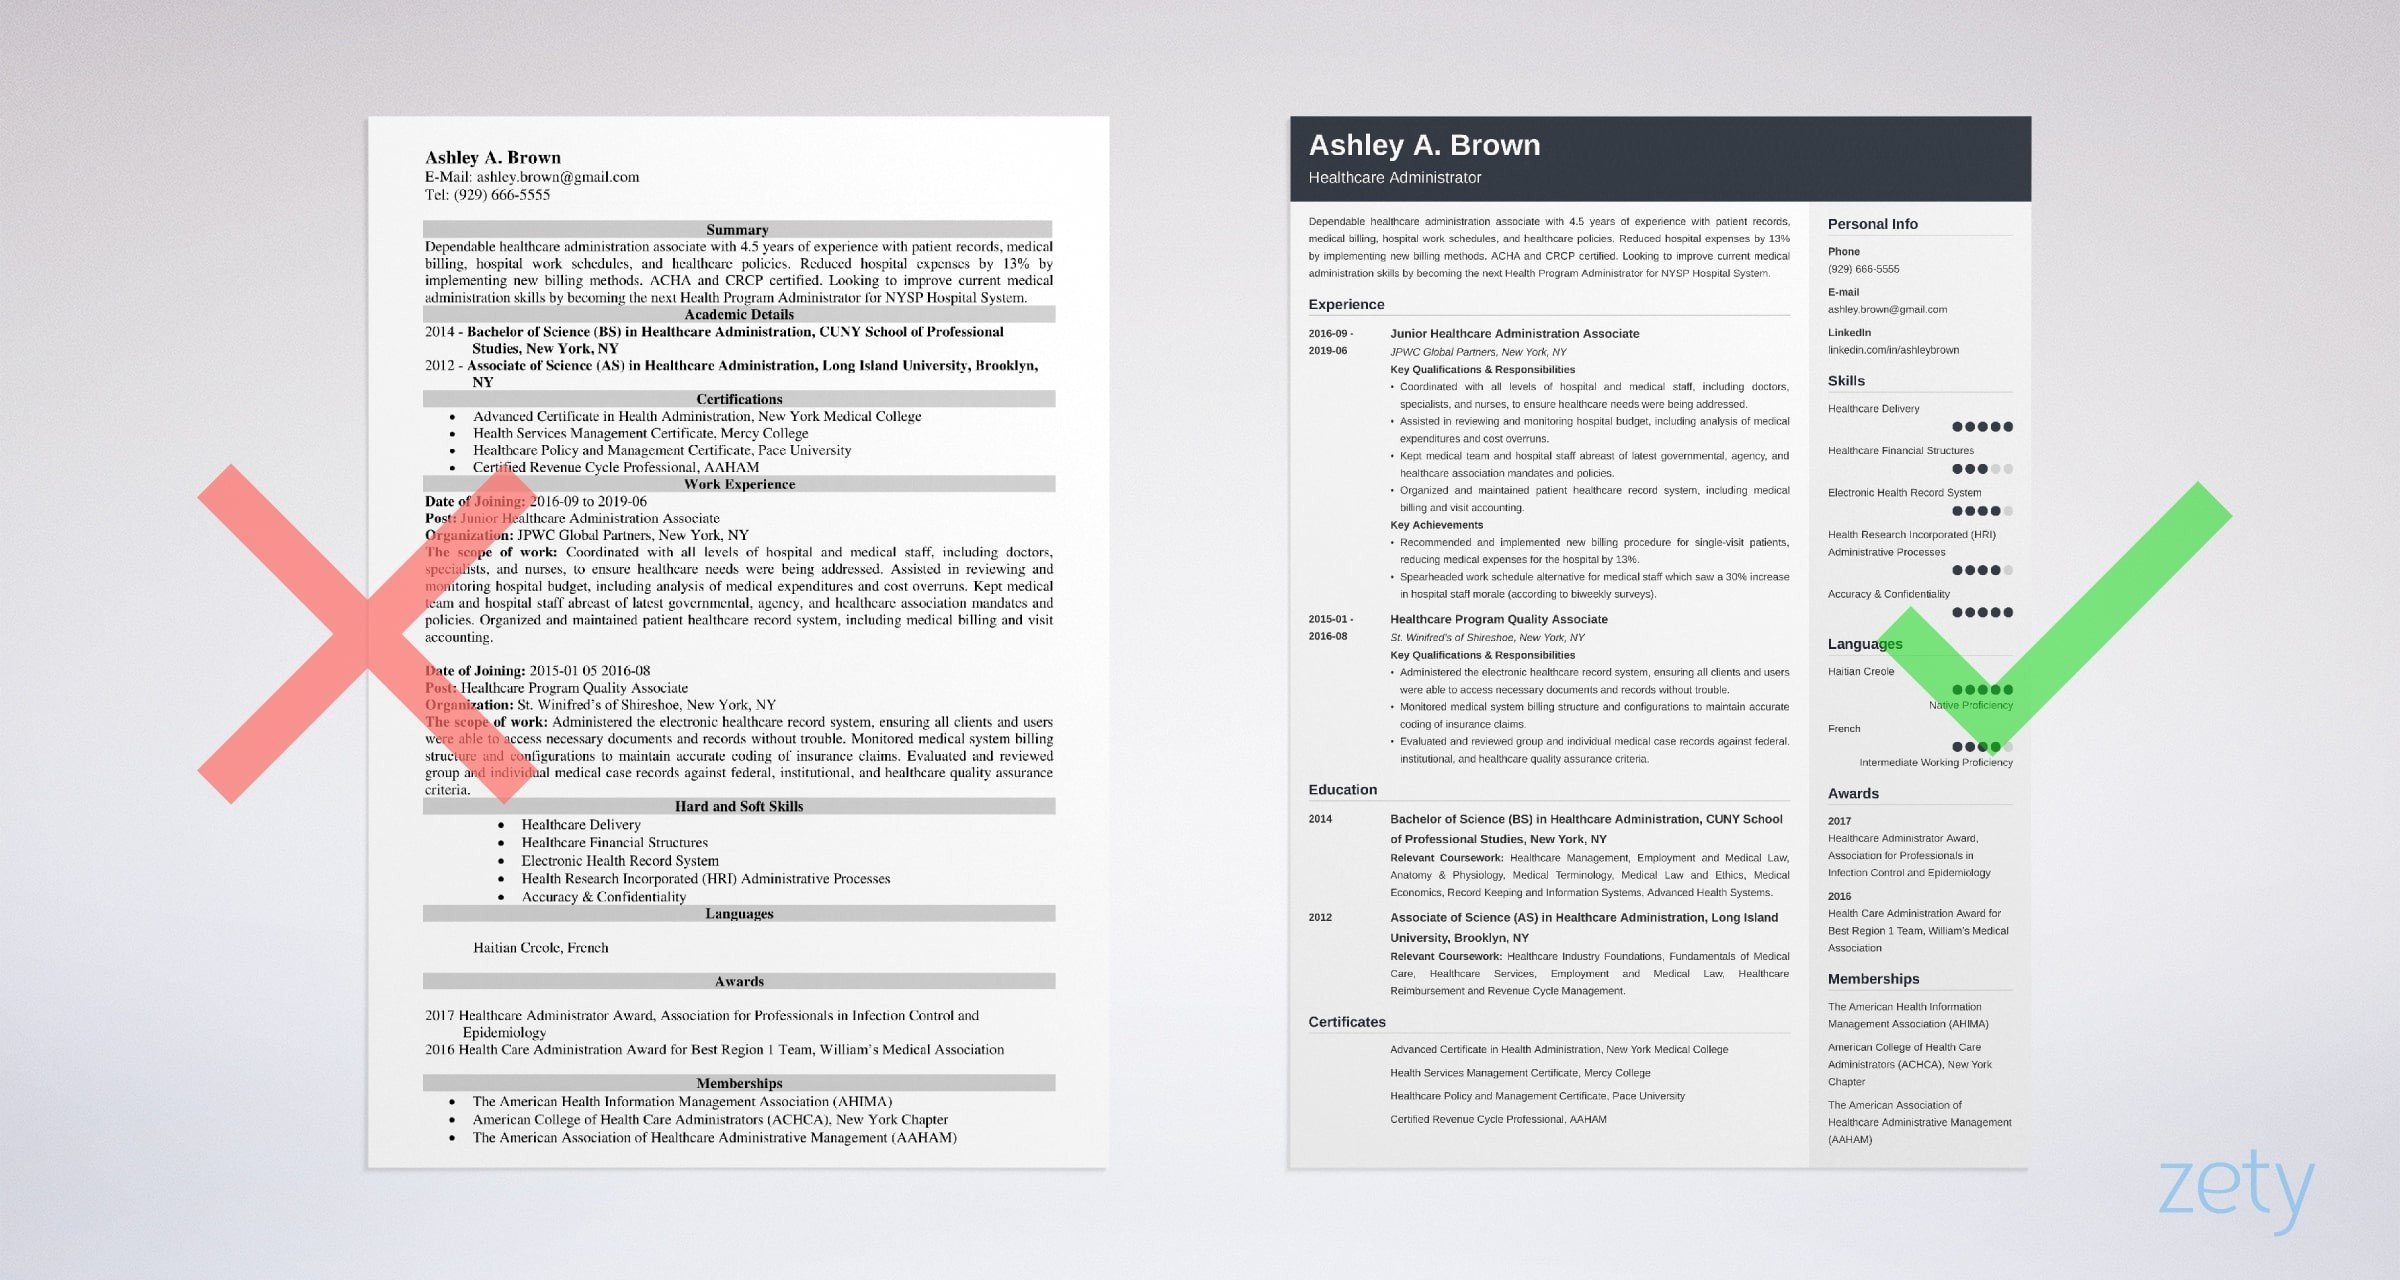 healthcare professional resume samples writing tips best writer for professionals example Resume Best Resume Writer For Healthcare Professionals